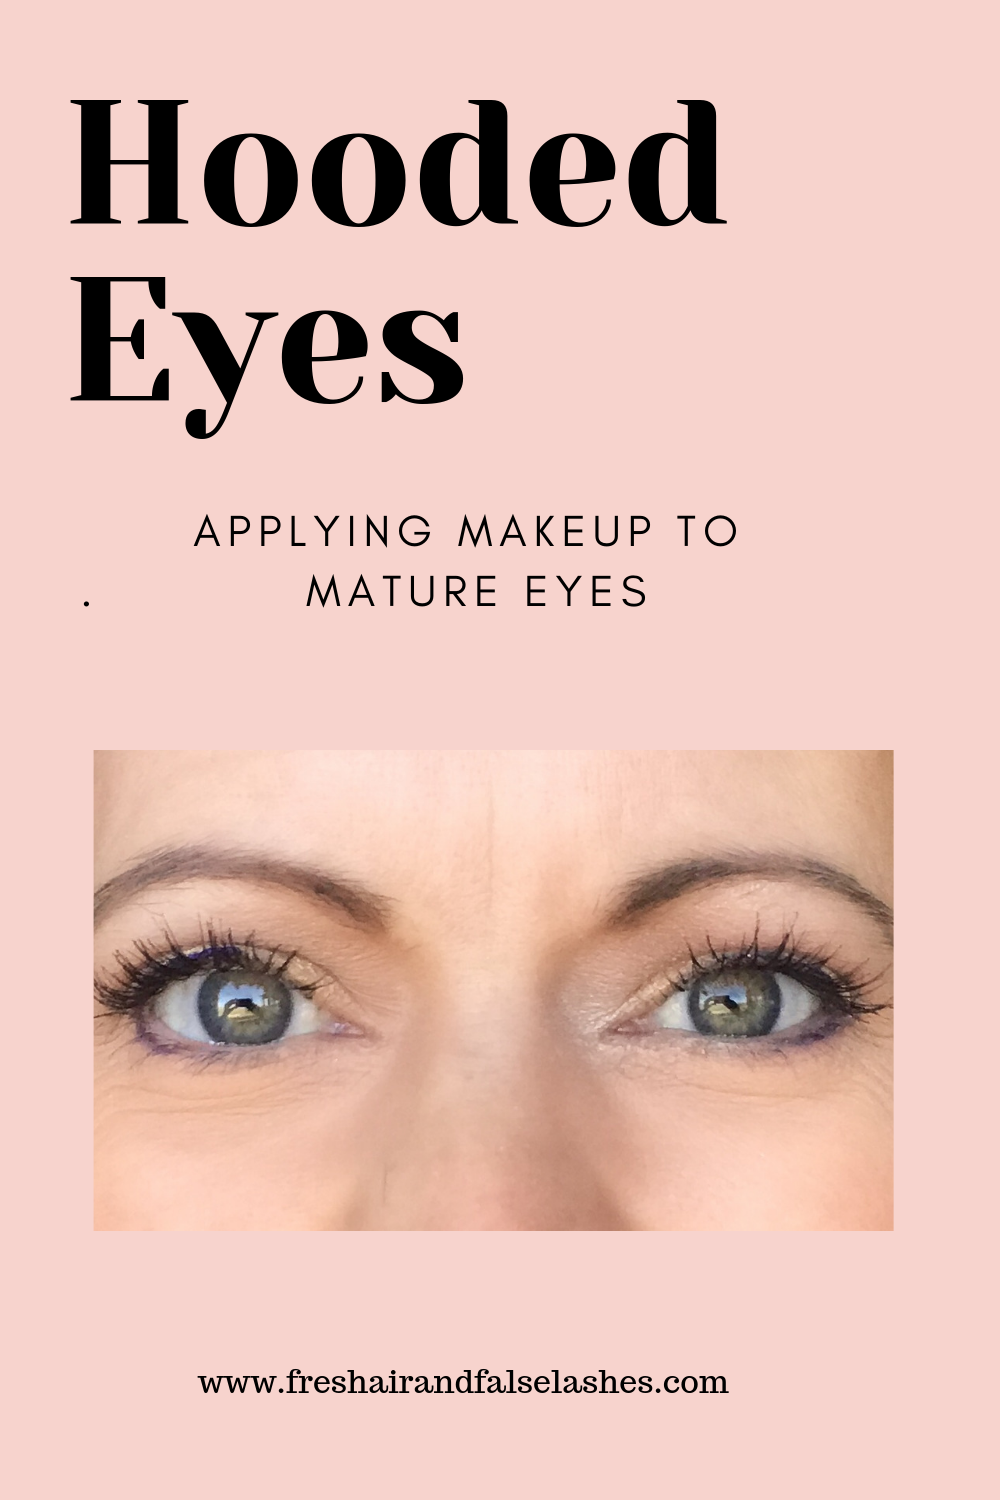 Mature, Hooded Eyes. Tips & Tricks to apply makeup for